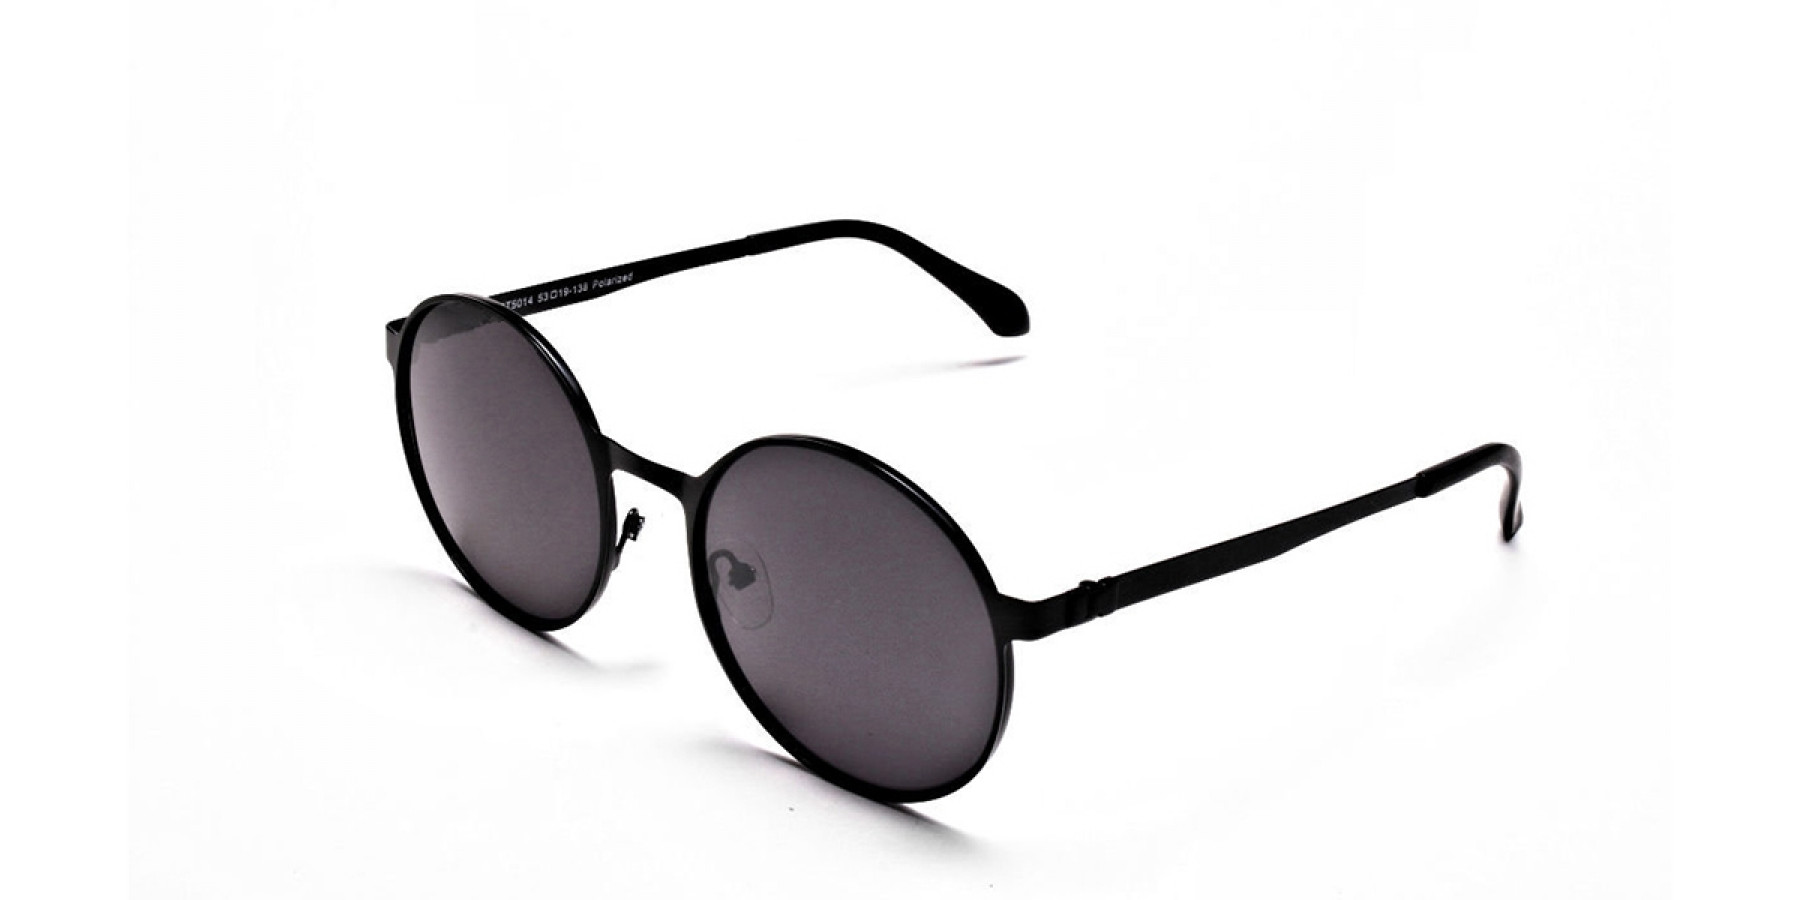 Grey tint sunglasses - 2